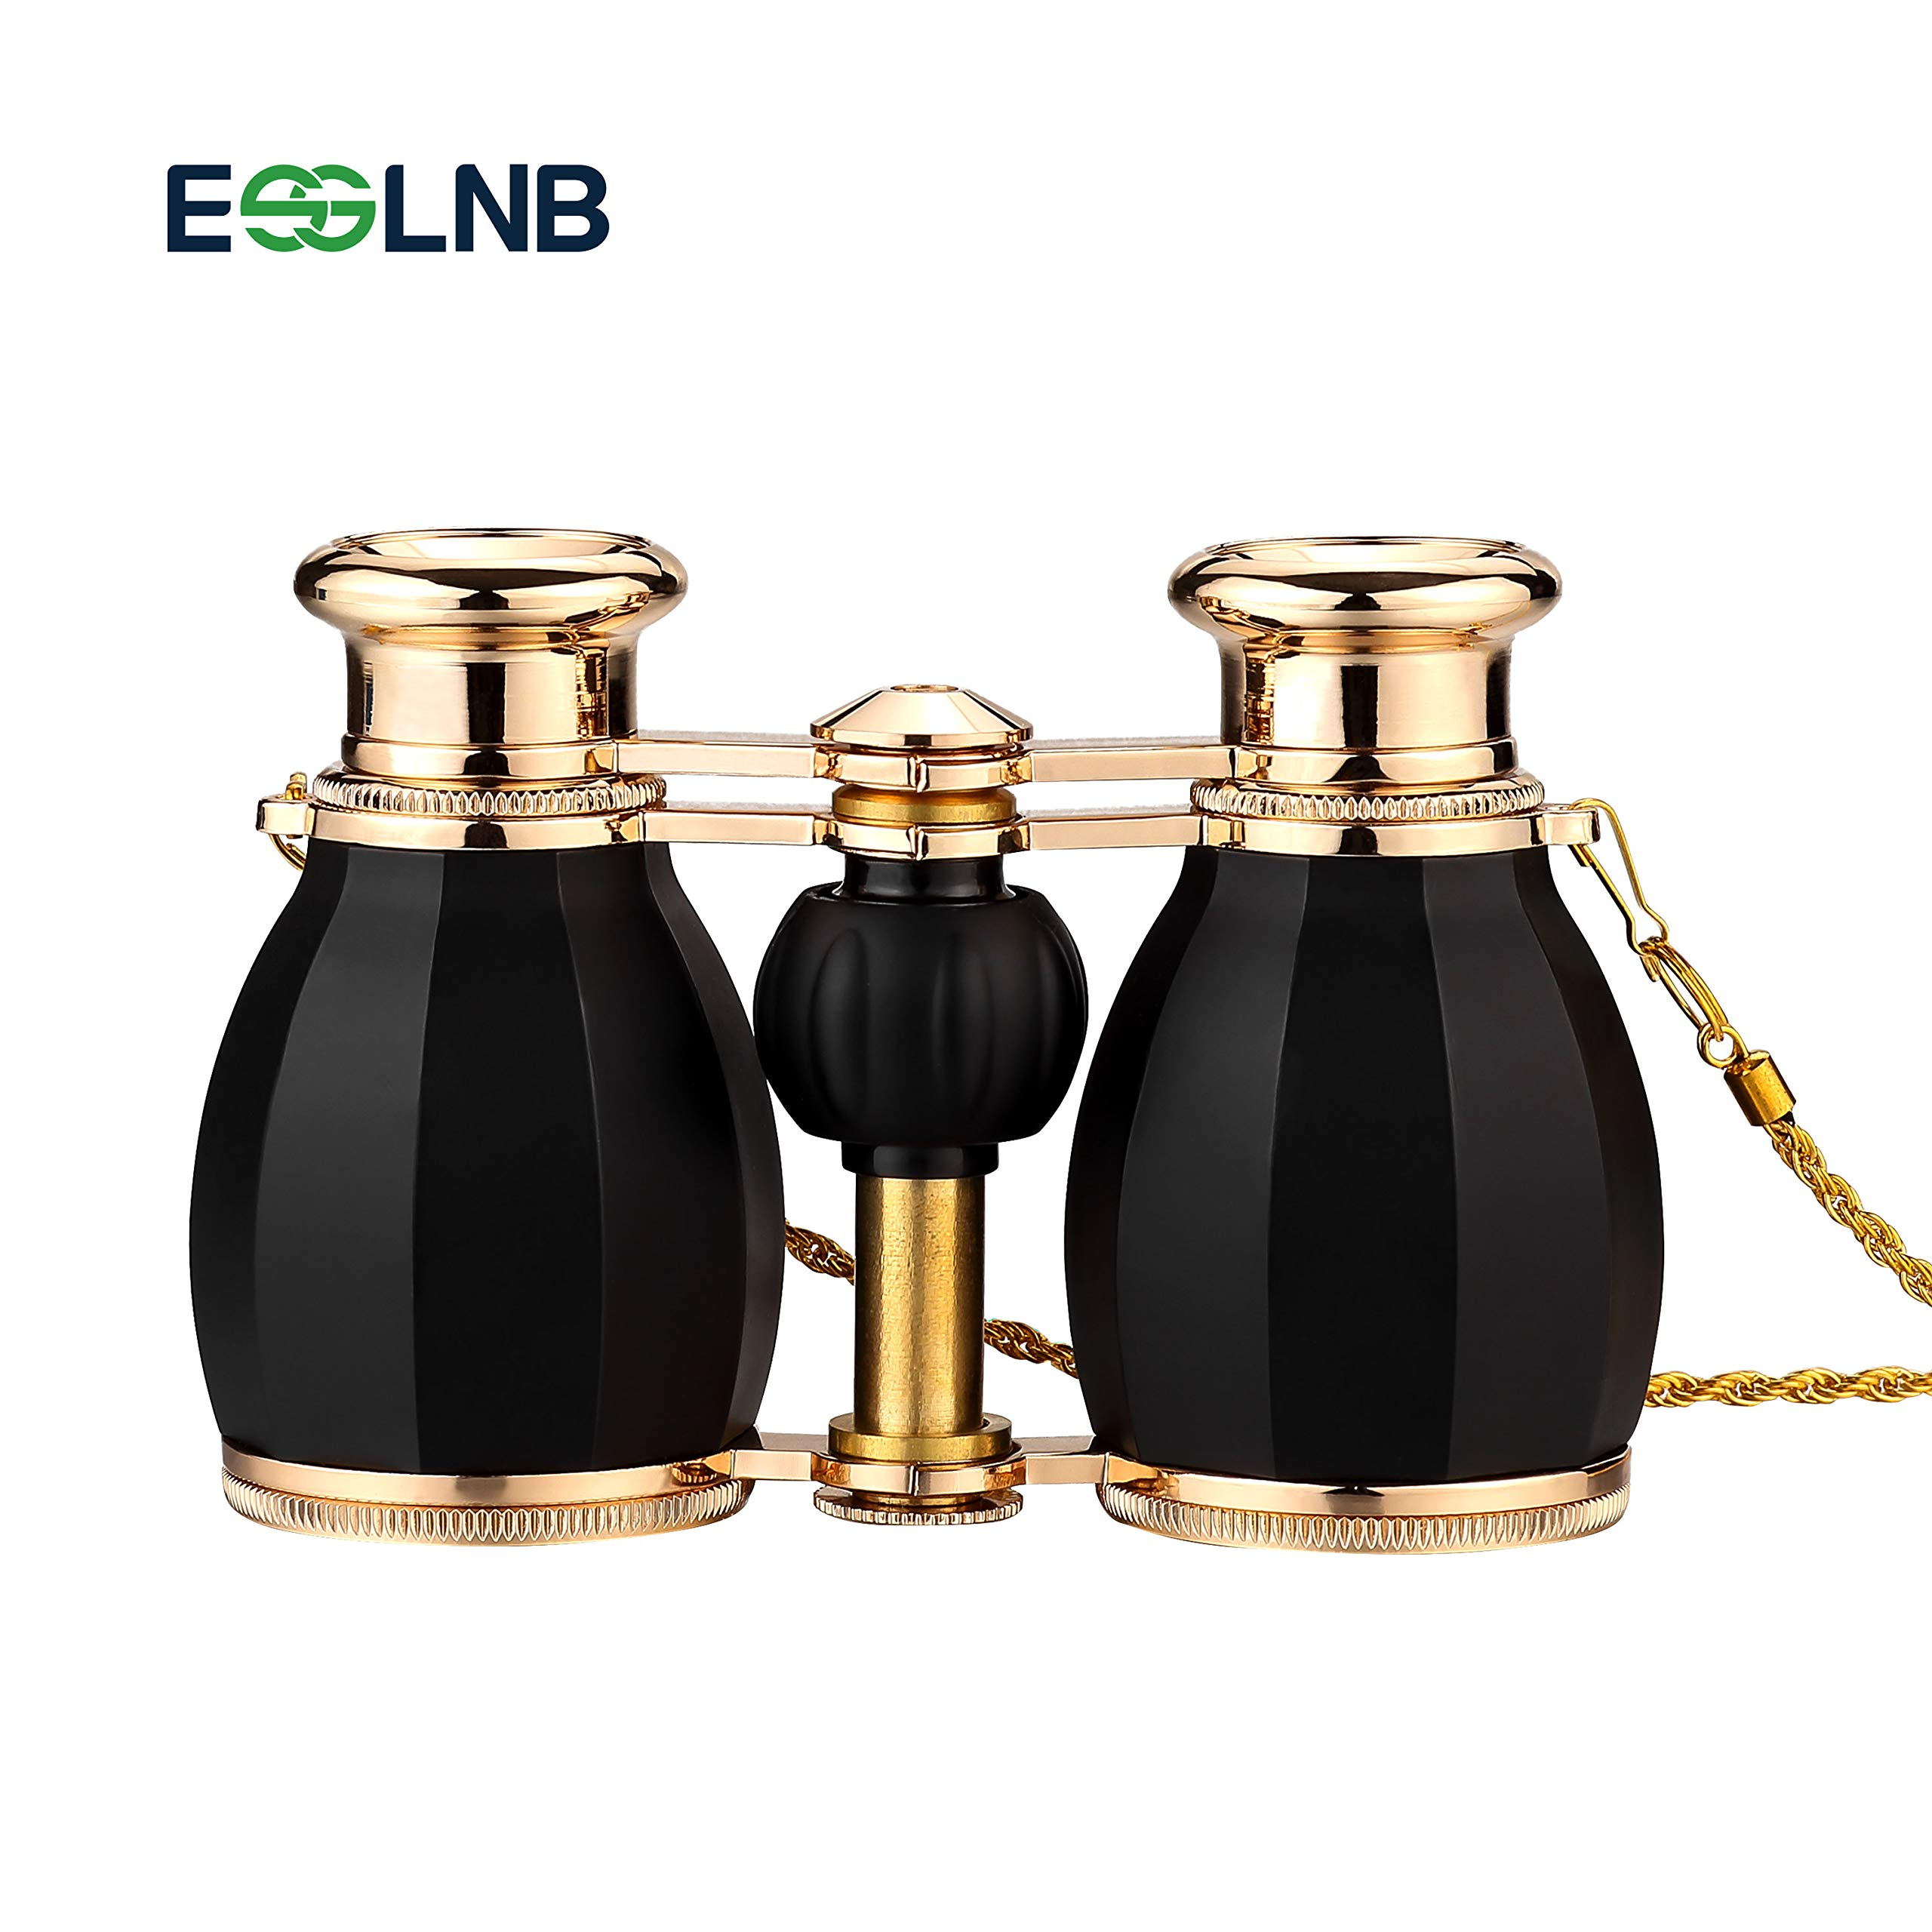 ESSLNB Opera Glasses Binoculars for Women Adults 4X30mm Theater Glasses Compact Binoculars for Theater and Concerts Antique Binoculars with Case Removable Chain Black by ESSLNB